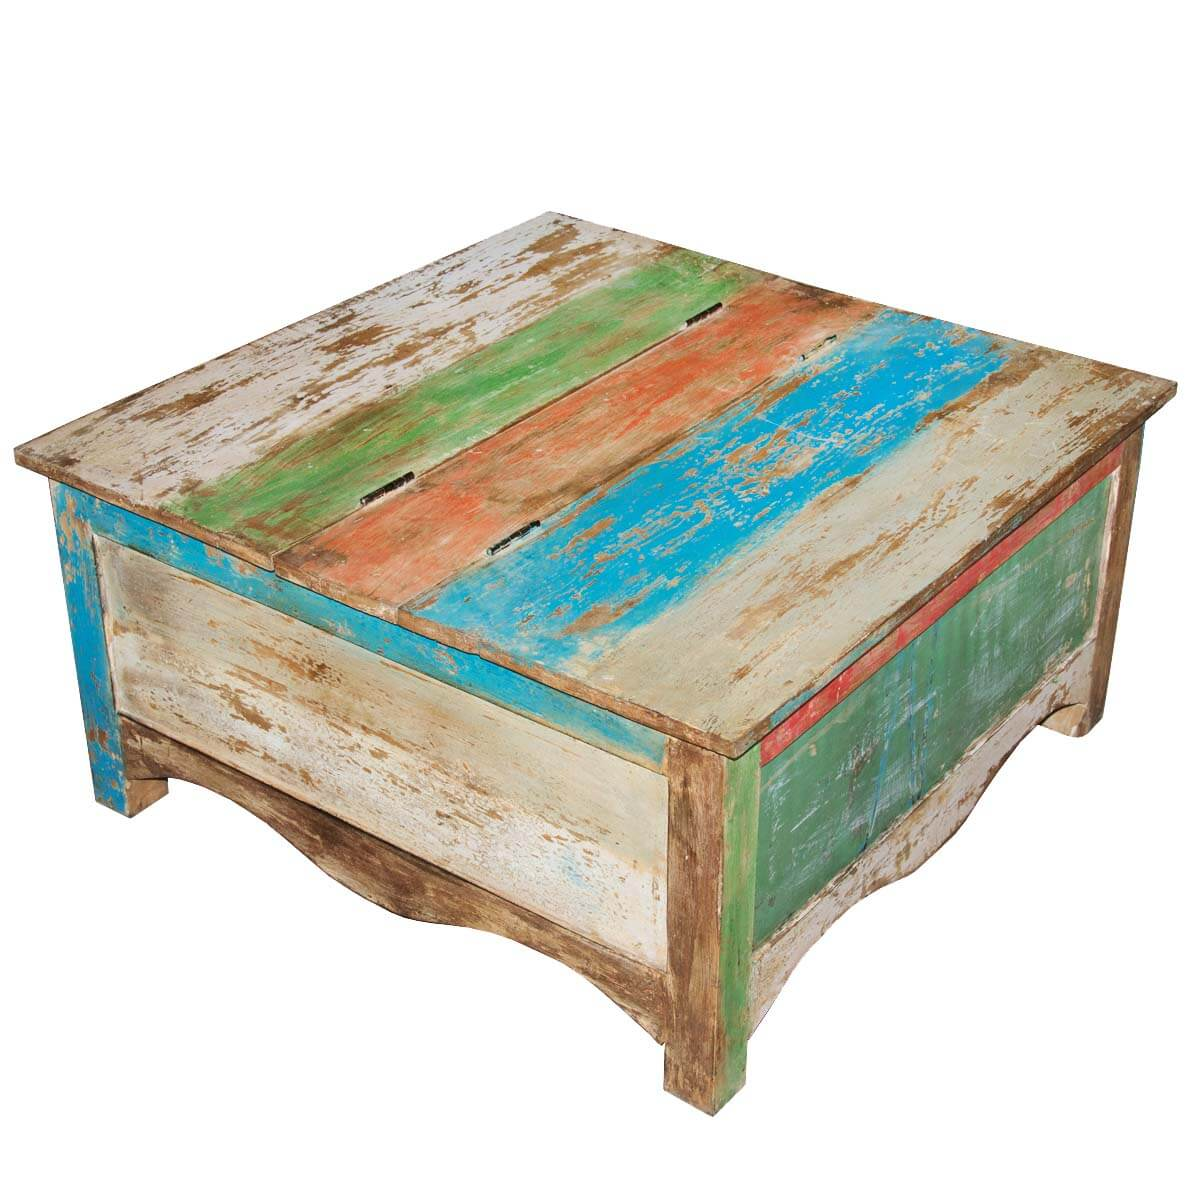 Rainbow Striped Square Reclaimed Wood Coffee Table Storage Chest